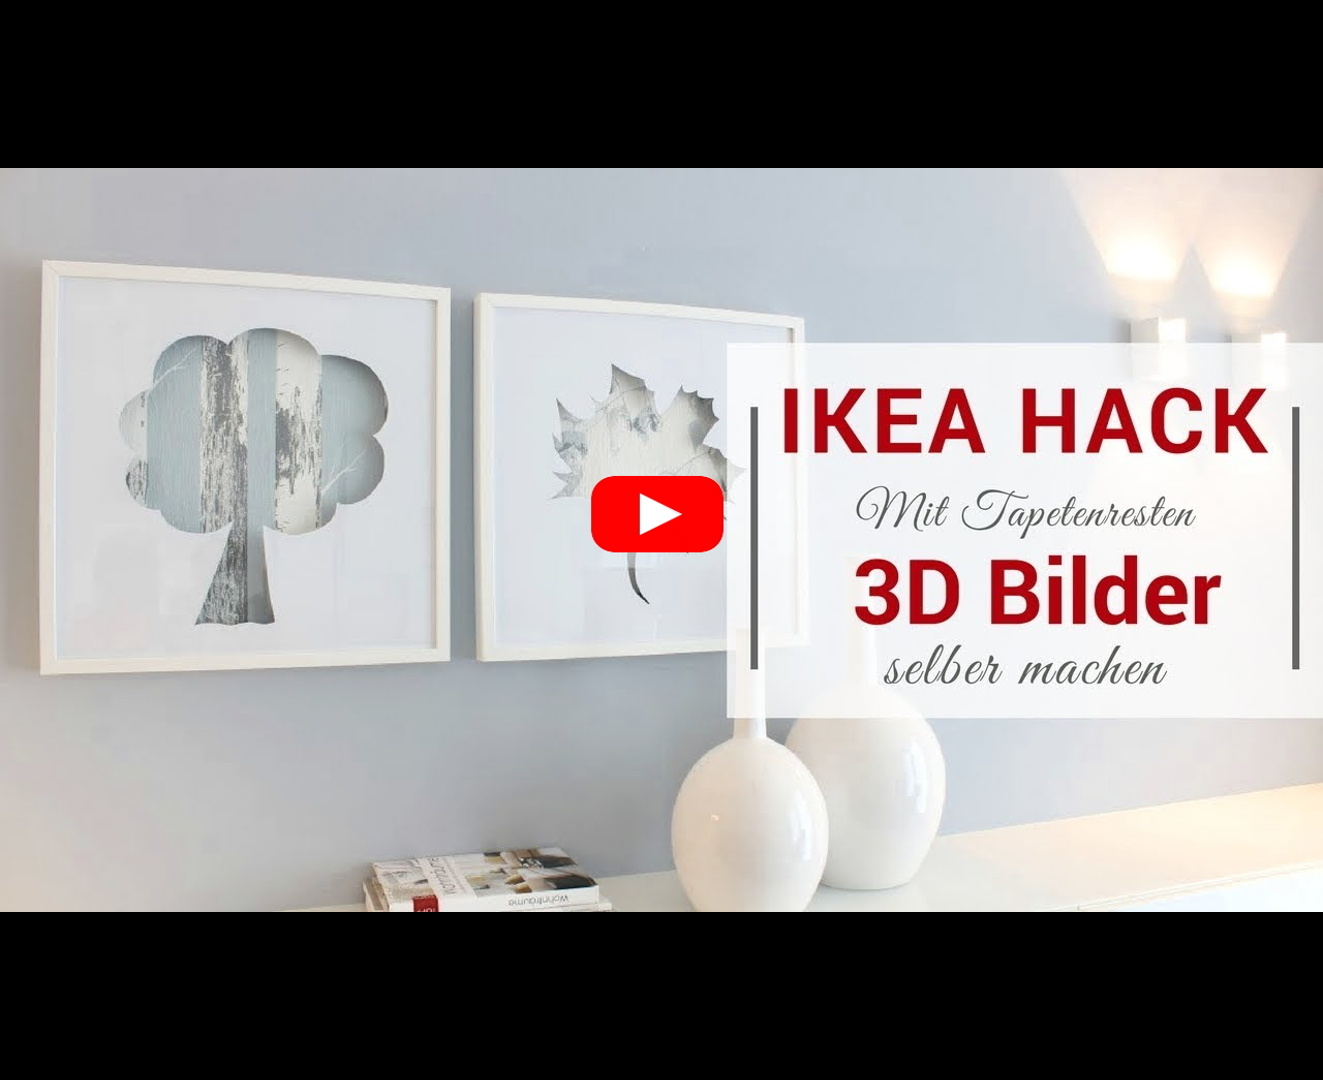 ikea hack 3d bilder mit tapetenresten im ribba bilderrahmen. Black Bedroom Furniture Sets. Home Design Ideas